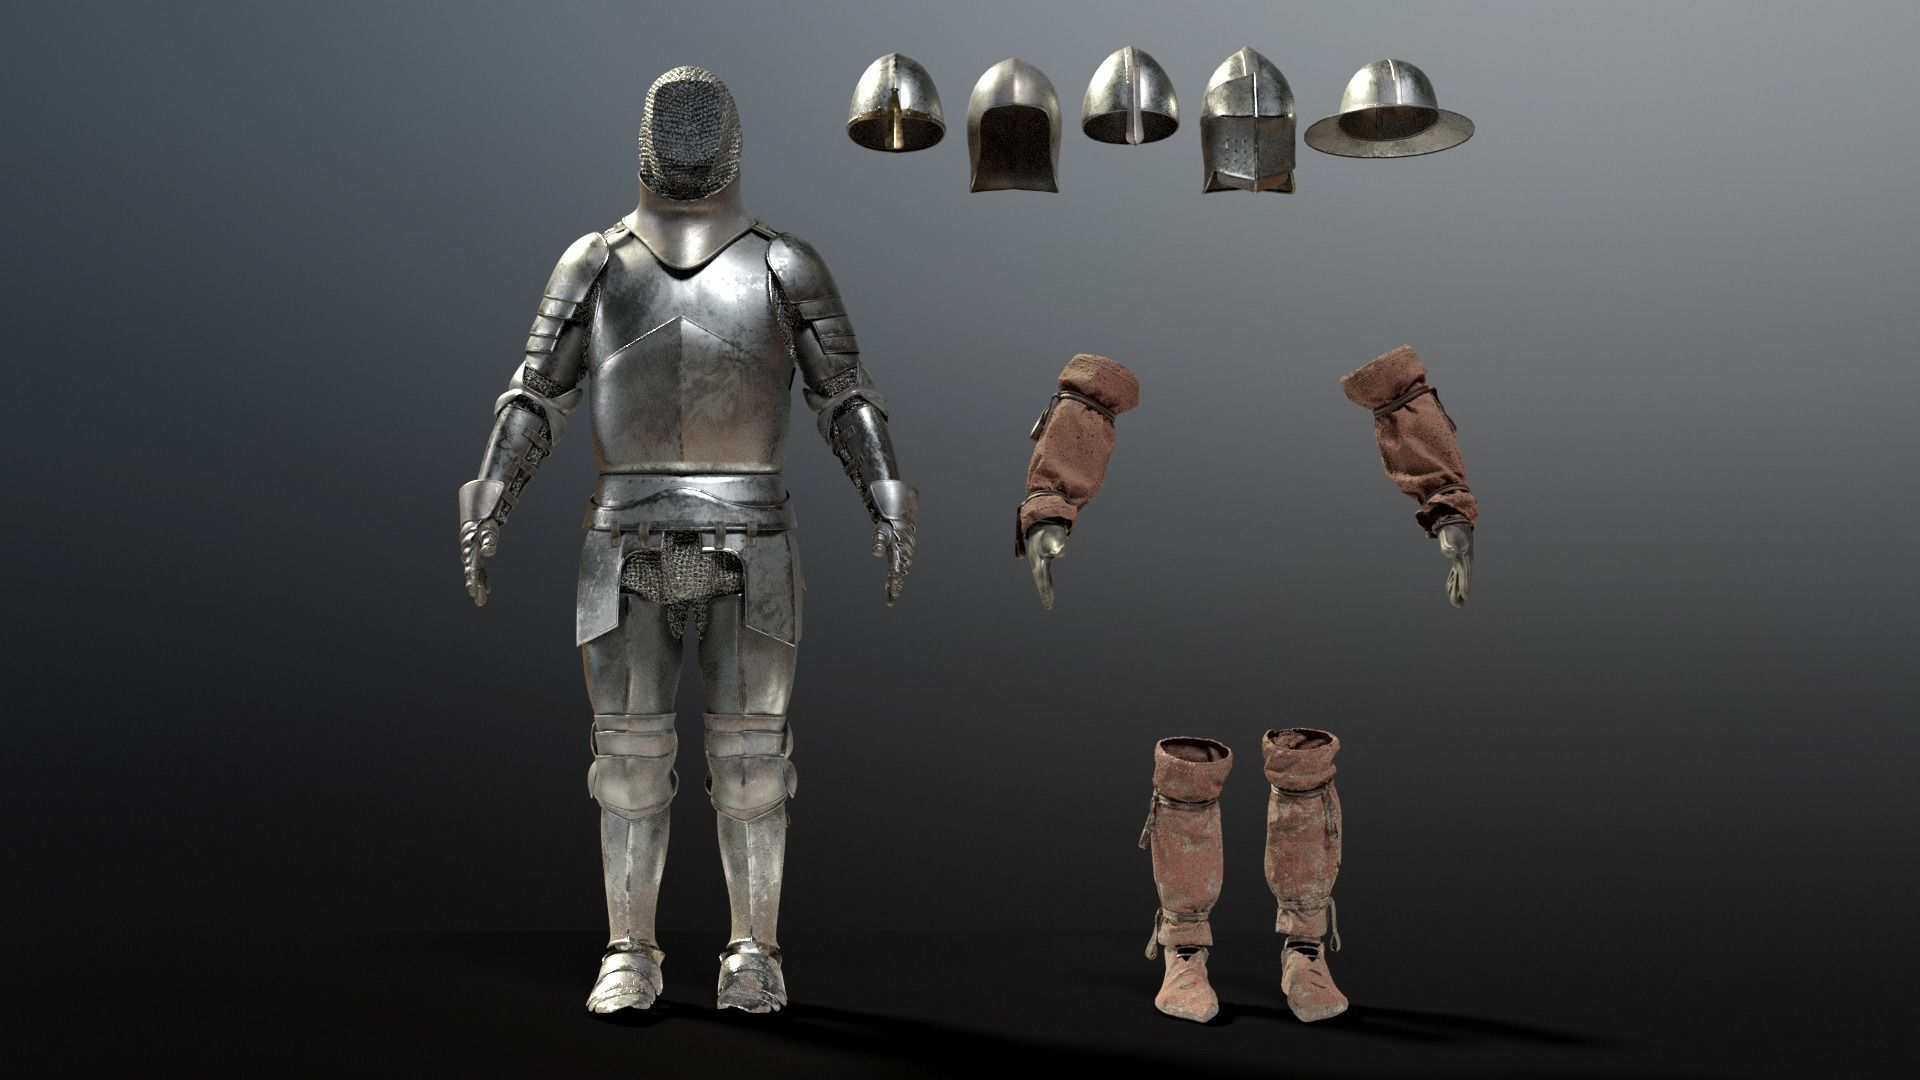 SOLDIER Medieval Knight